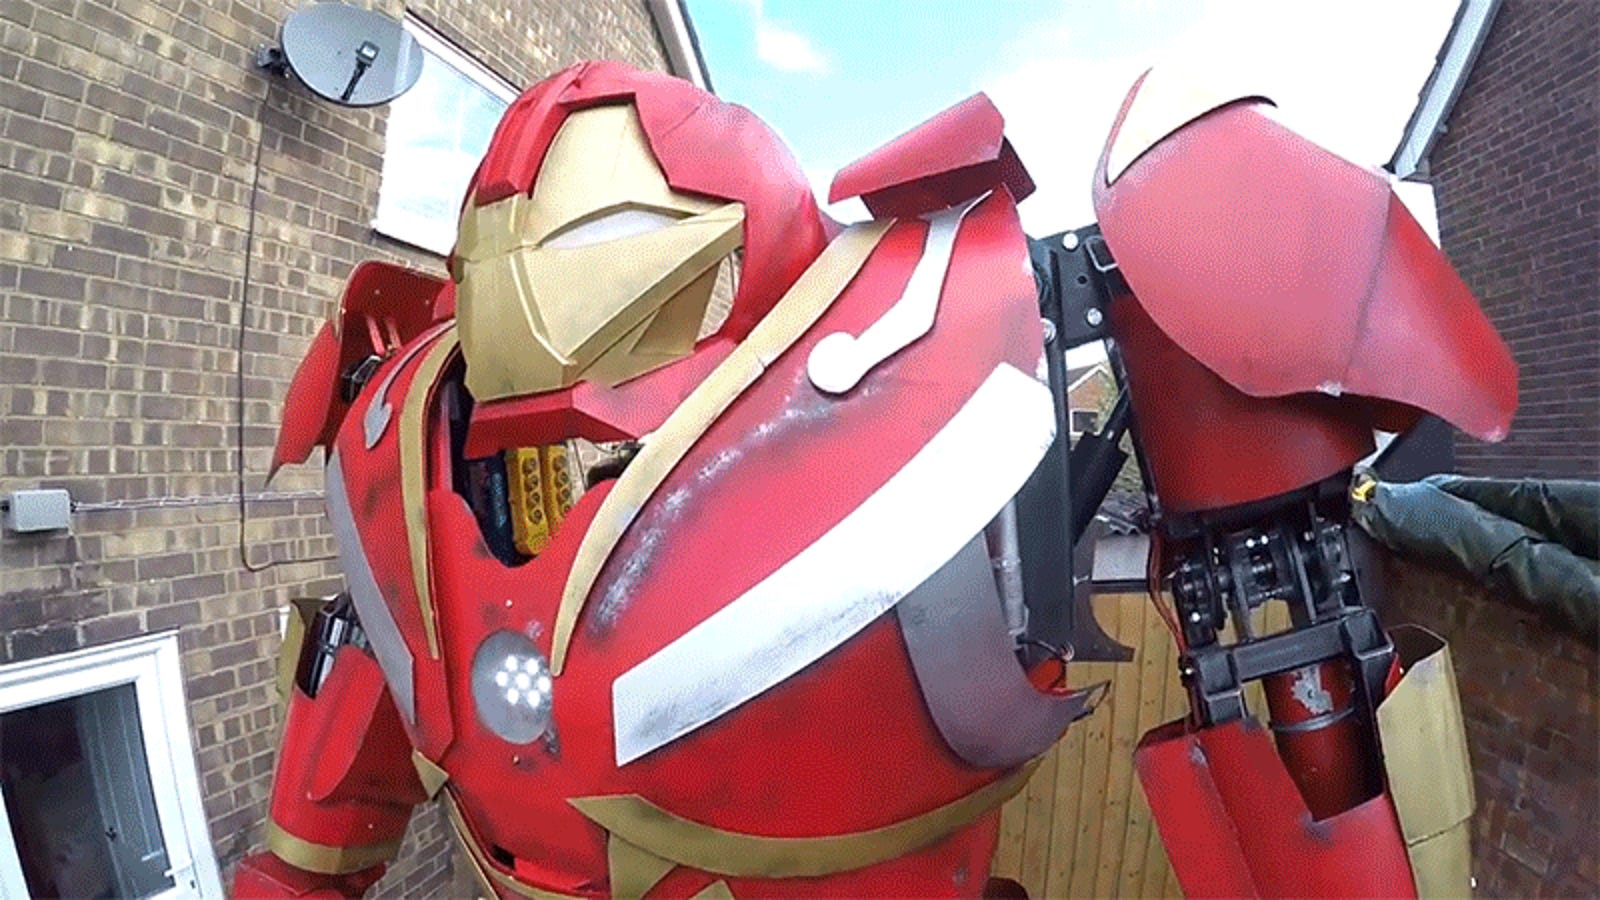 A Pair of Aspiring Tony Starks Built an Enormous Hulkbuster Using Parts Bought on eBay